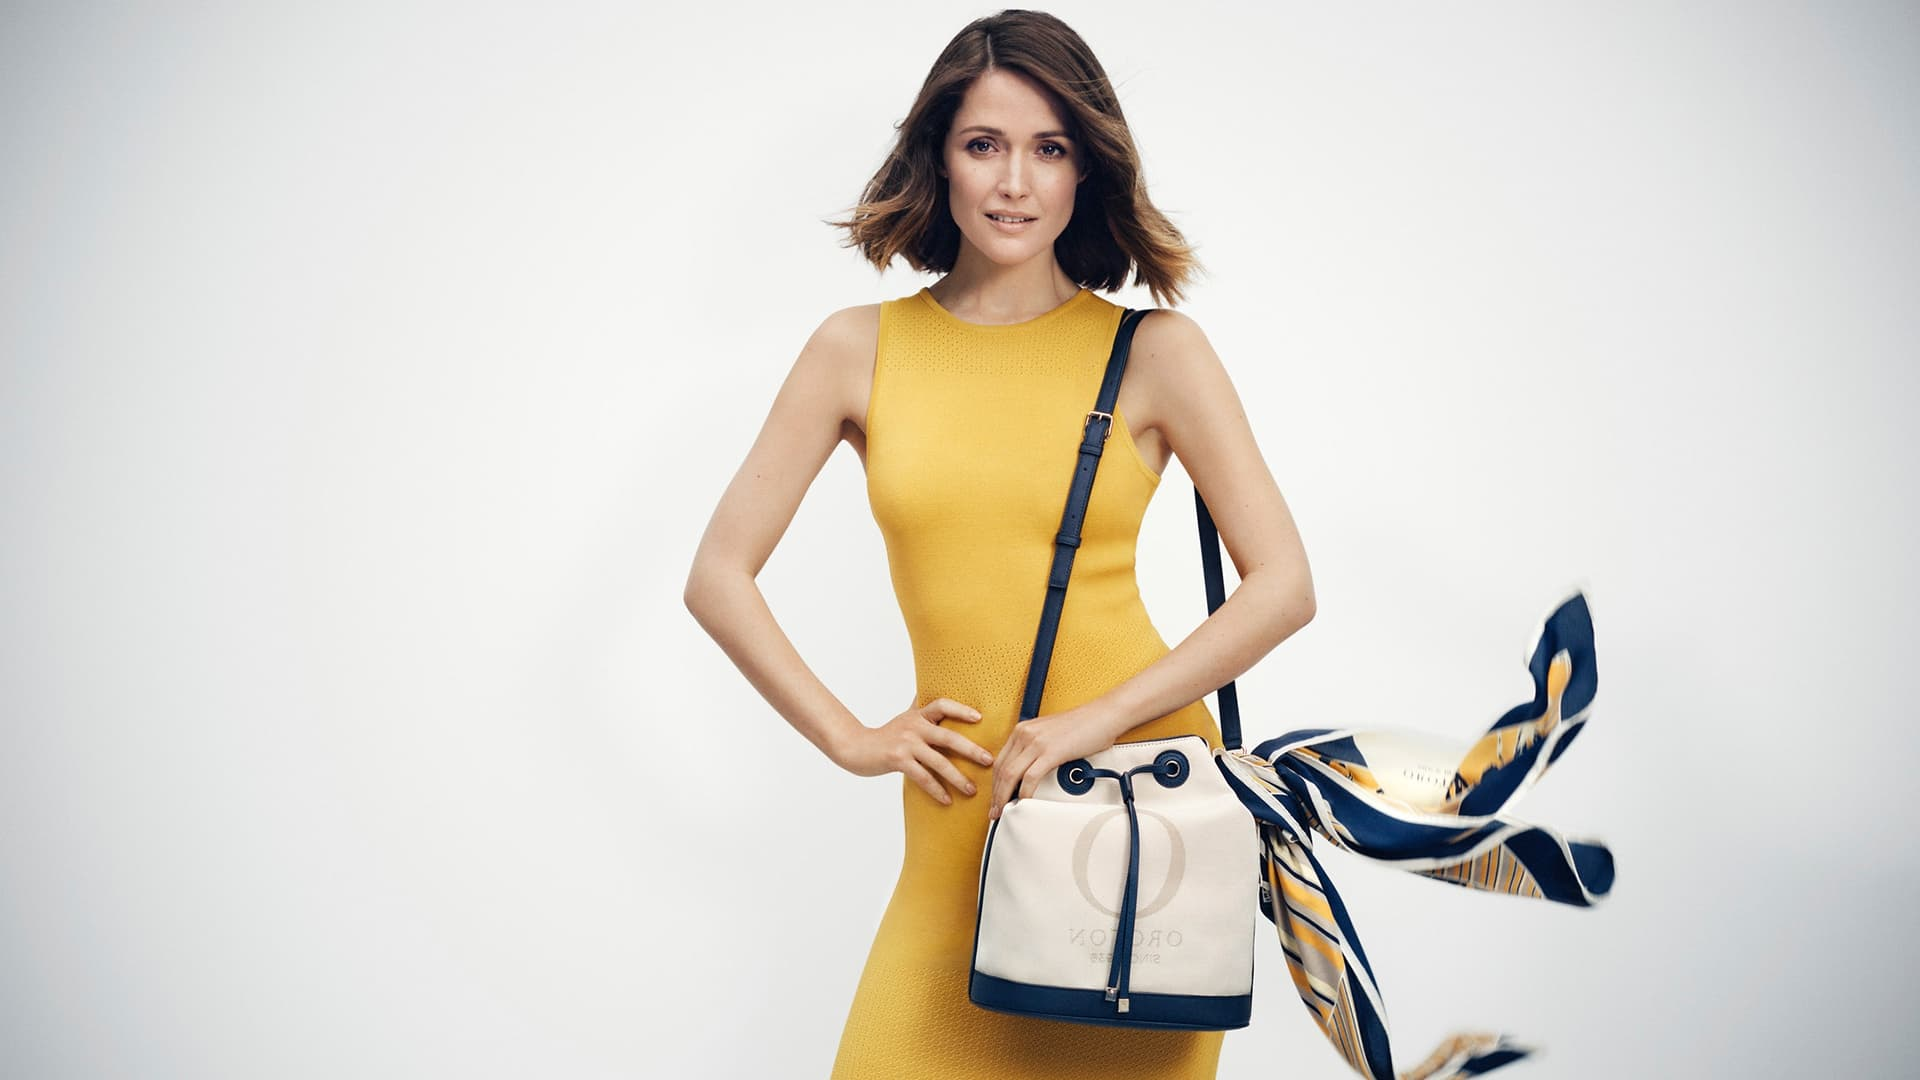 Rose Byrne 4k handbag